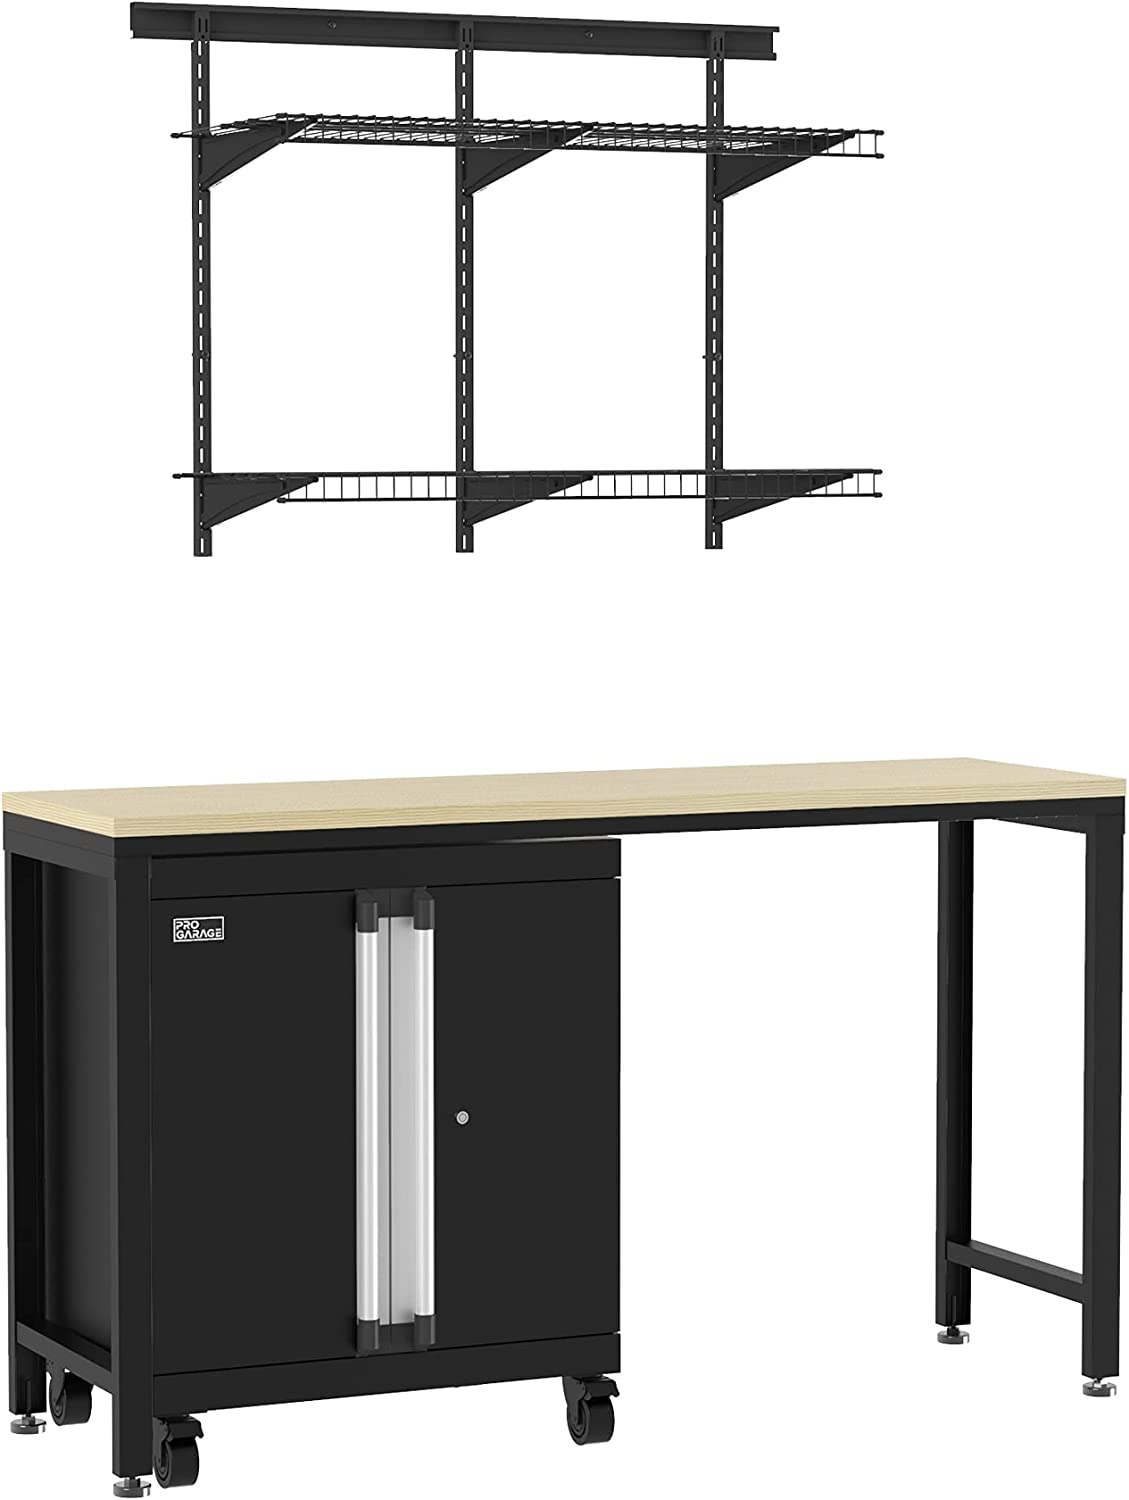 ClosetMaid Shelf Steel Storage Cheap mail order shopping Workbench Max 72% OFF Table MaxLo Cabinets